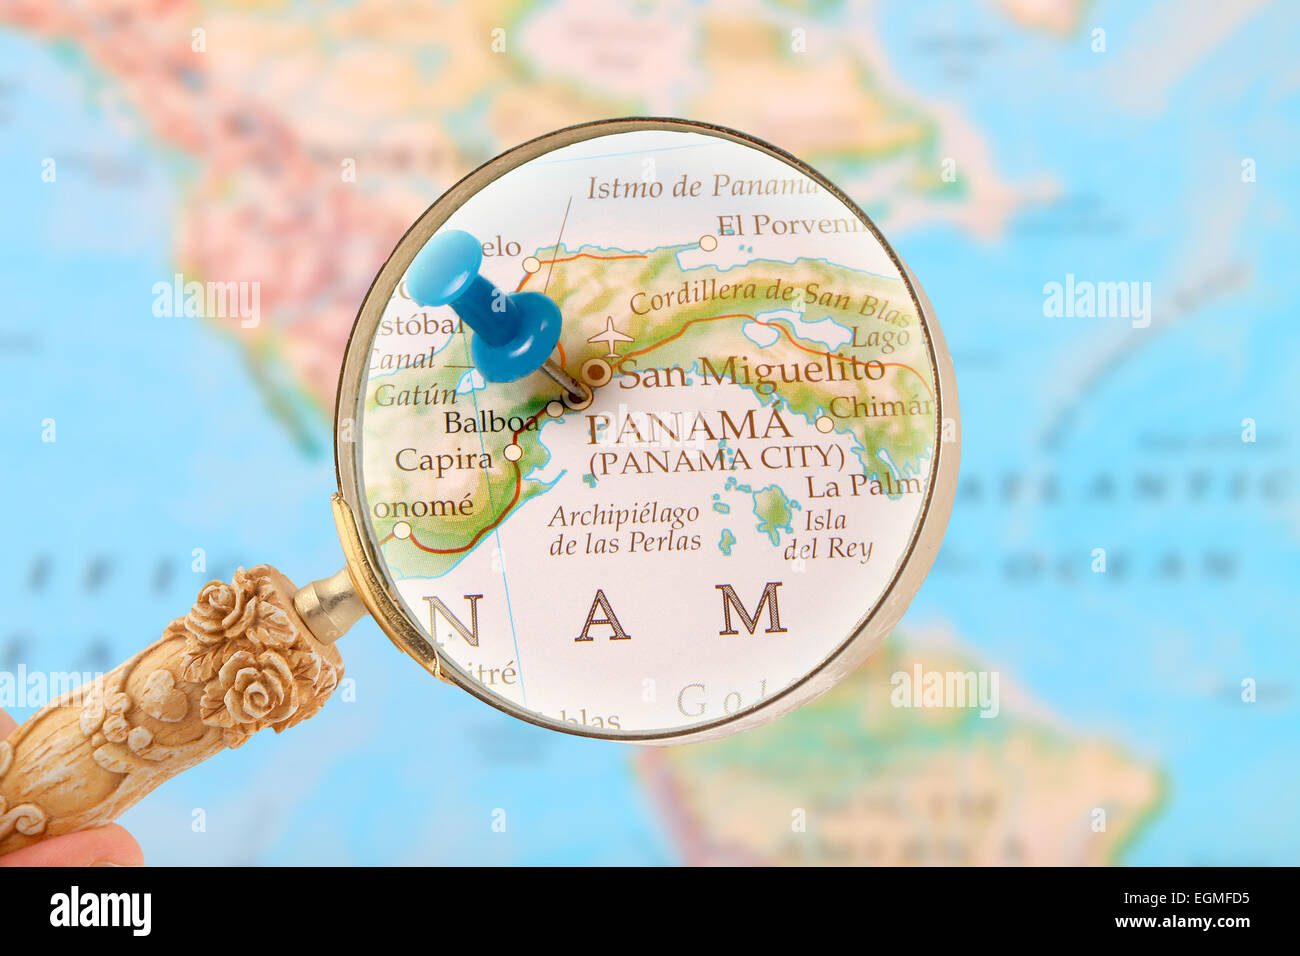 Panama Map Stockfotos & Panama Map Bilder - Alamy